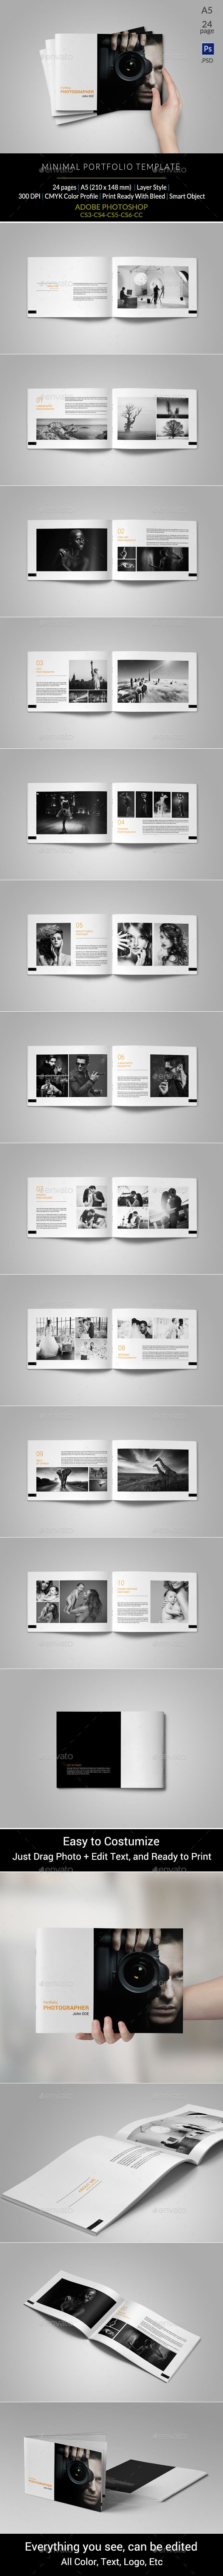 Portfolio Photographer Brochure Template PSD #design Download: http://graphicriver.net/item/portfolio-photographer/13628798?ref=ksioks